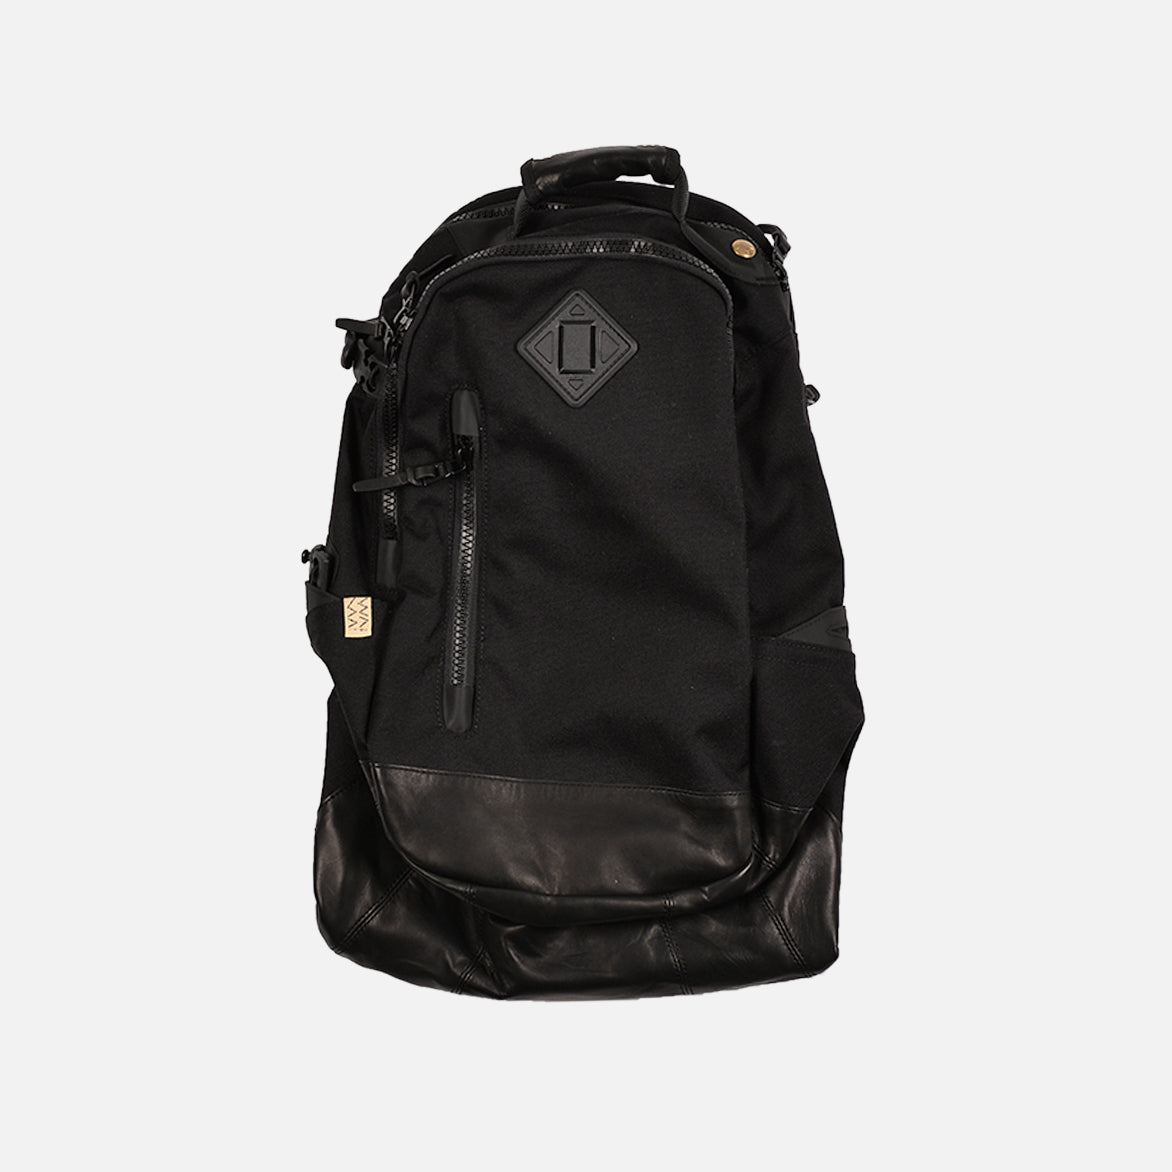 CORDURA 20L BACKPACK - BLACK